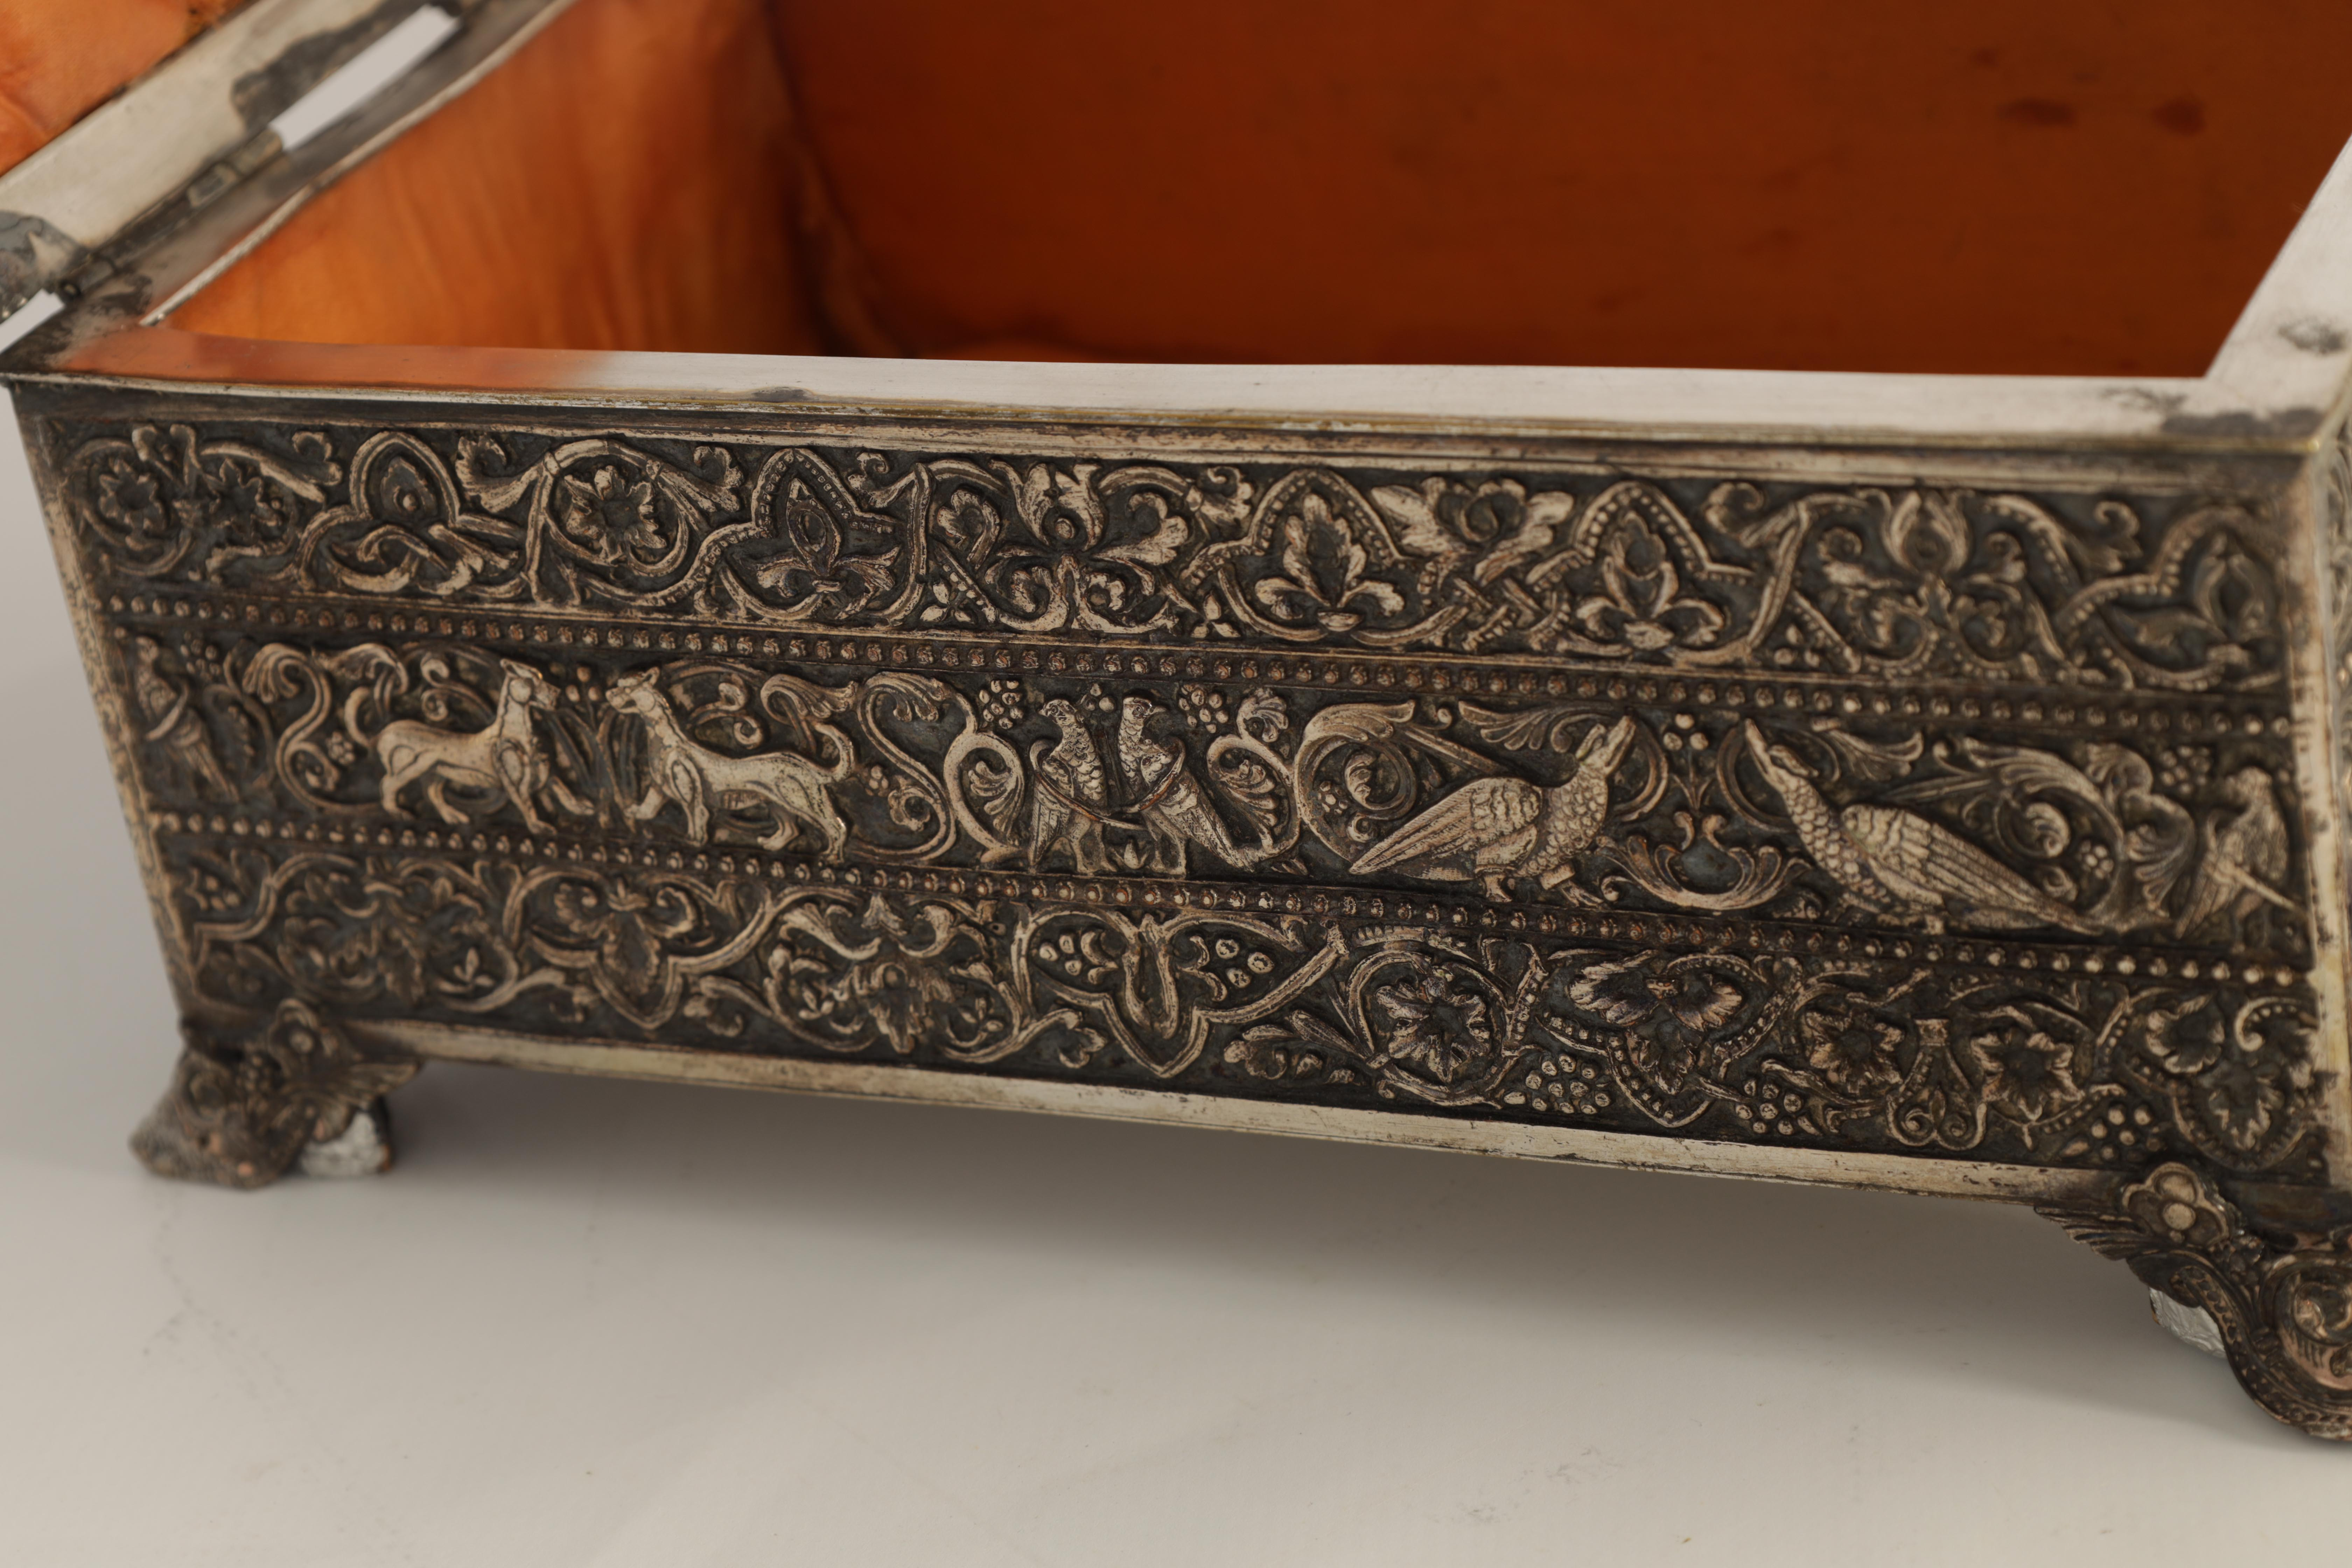 A 19TH CENTURY SILVERED BRONZE JEWELLERY CASKET the lid with intricate relief groups of birds, - Image 6 of 12